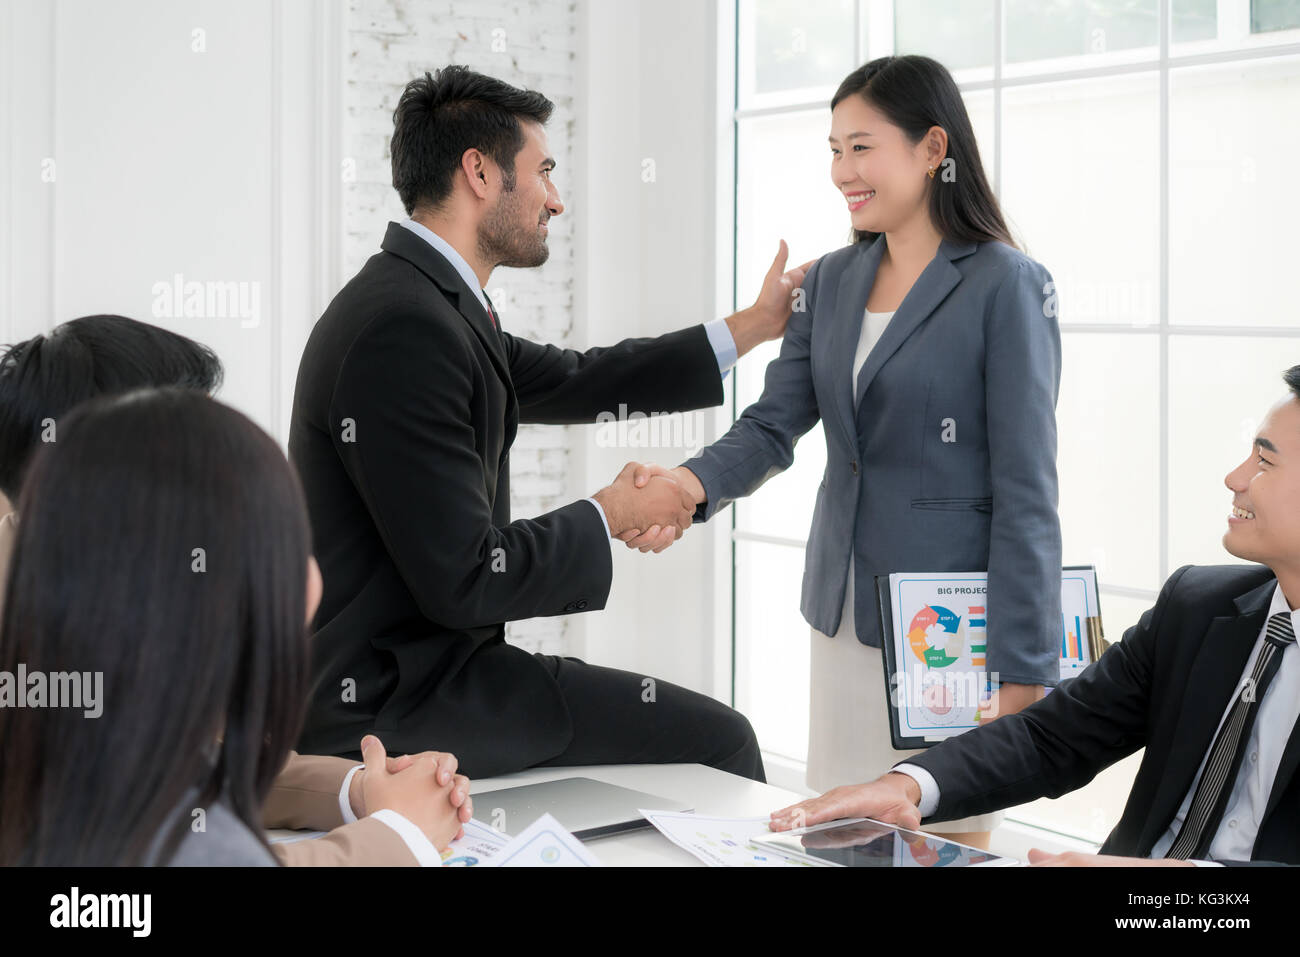 Asian businessman and businesswoman shaking hands in conference room. Business people shaking hands agreement concept. - Stock Image